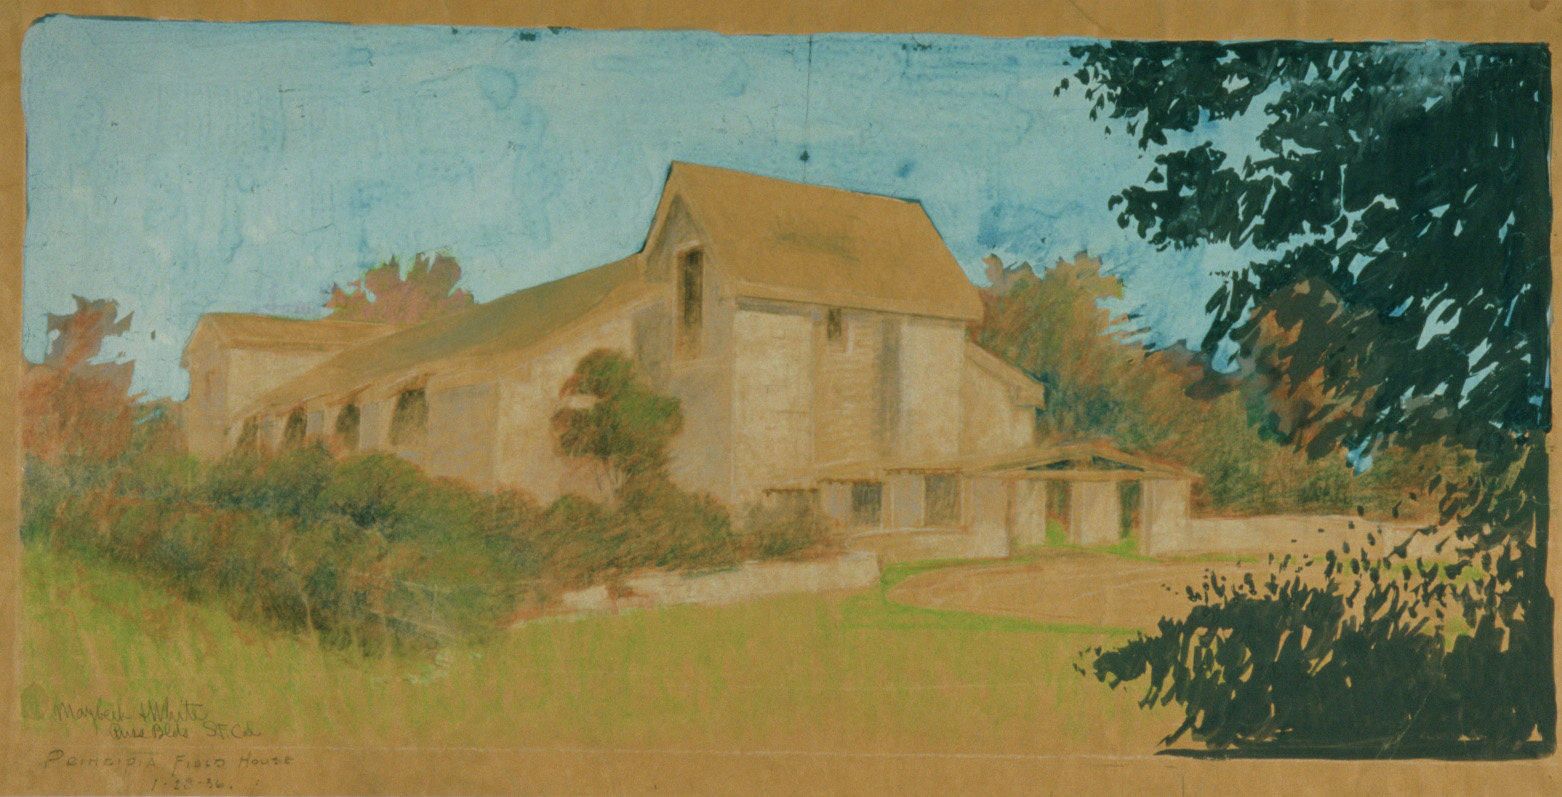 Maybeck & White, Field House, 1936, Pastel, graphite on kraft paper, 33 x 46 in.